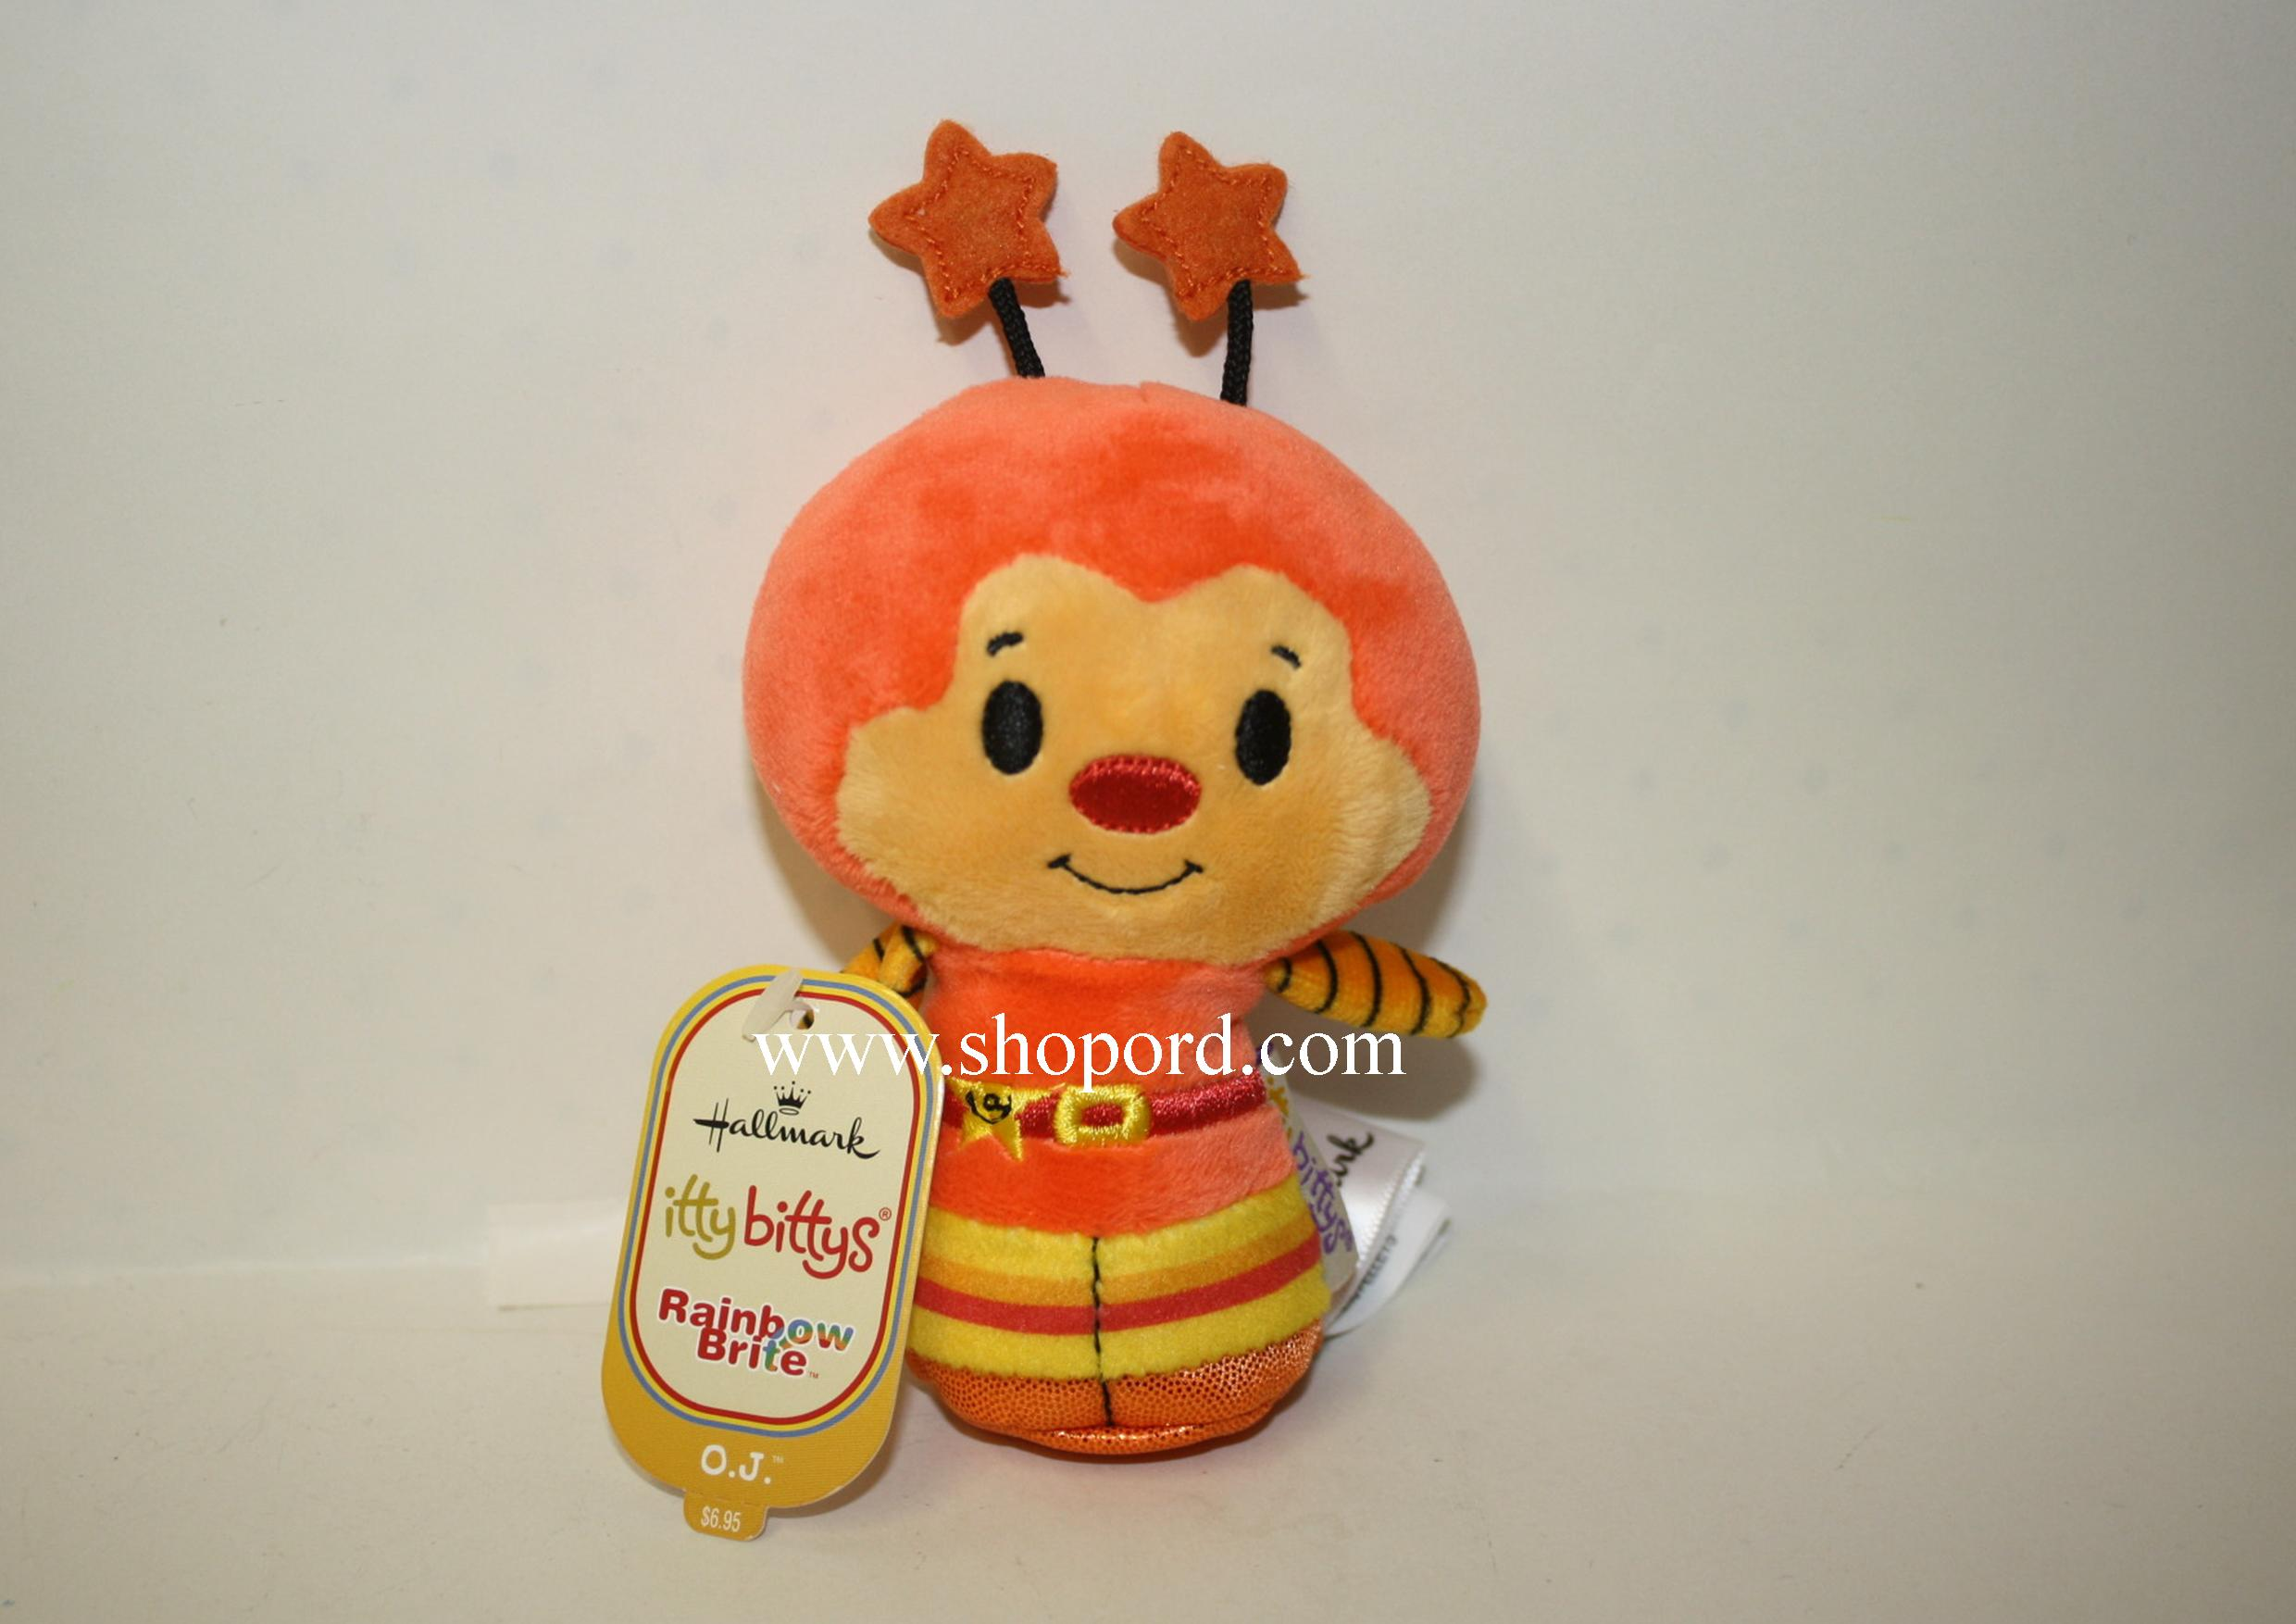 Hallmark itty bitty OJ Plush Rainbow Brite KID3429